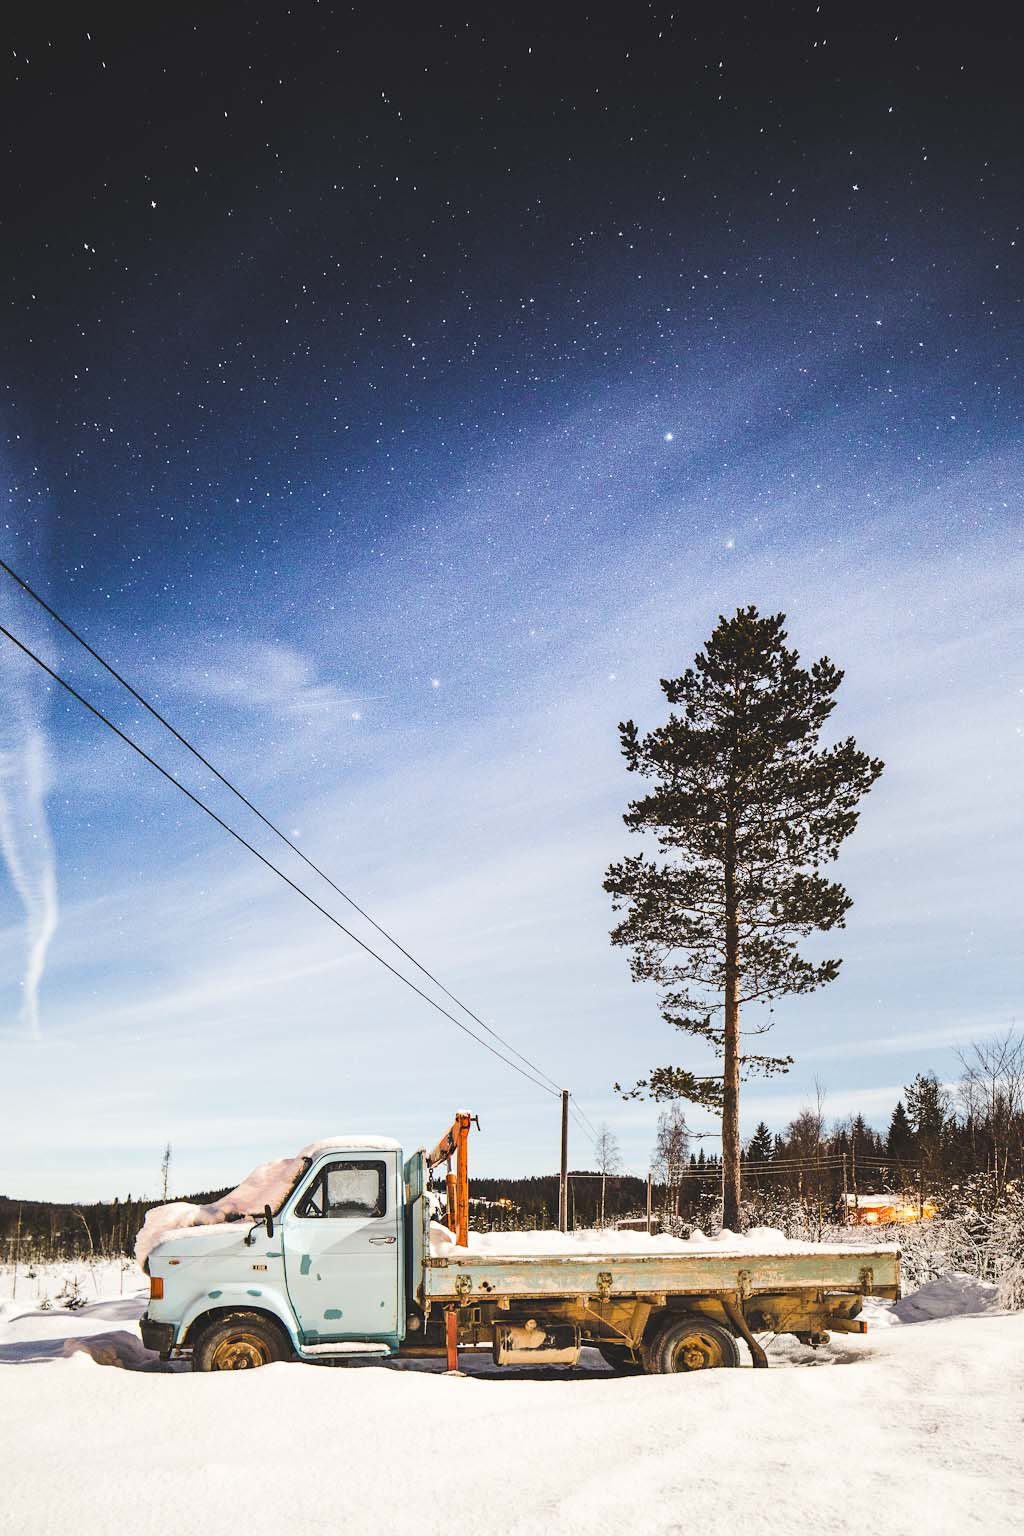 norway trysil wedding photographer skiing winter ski snowboard trip travel destination northern sky stars starry (1)